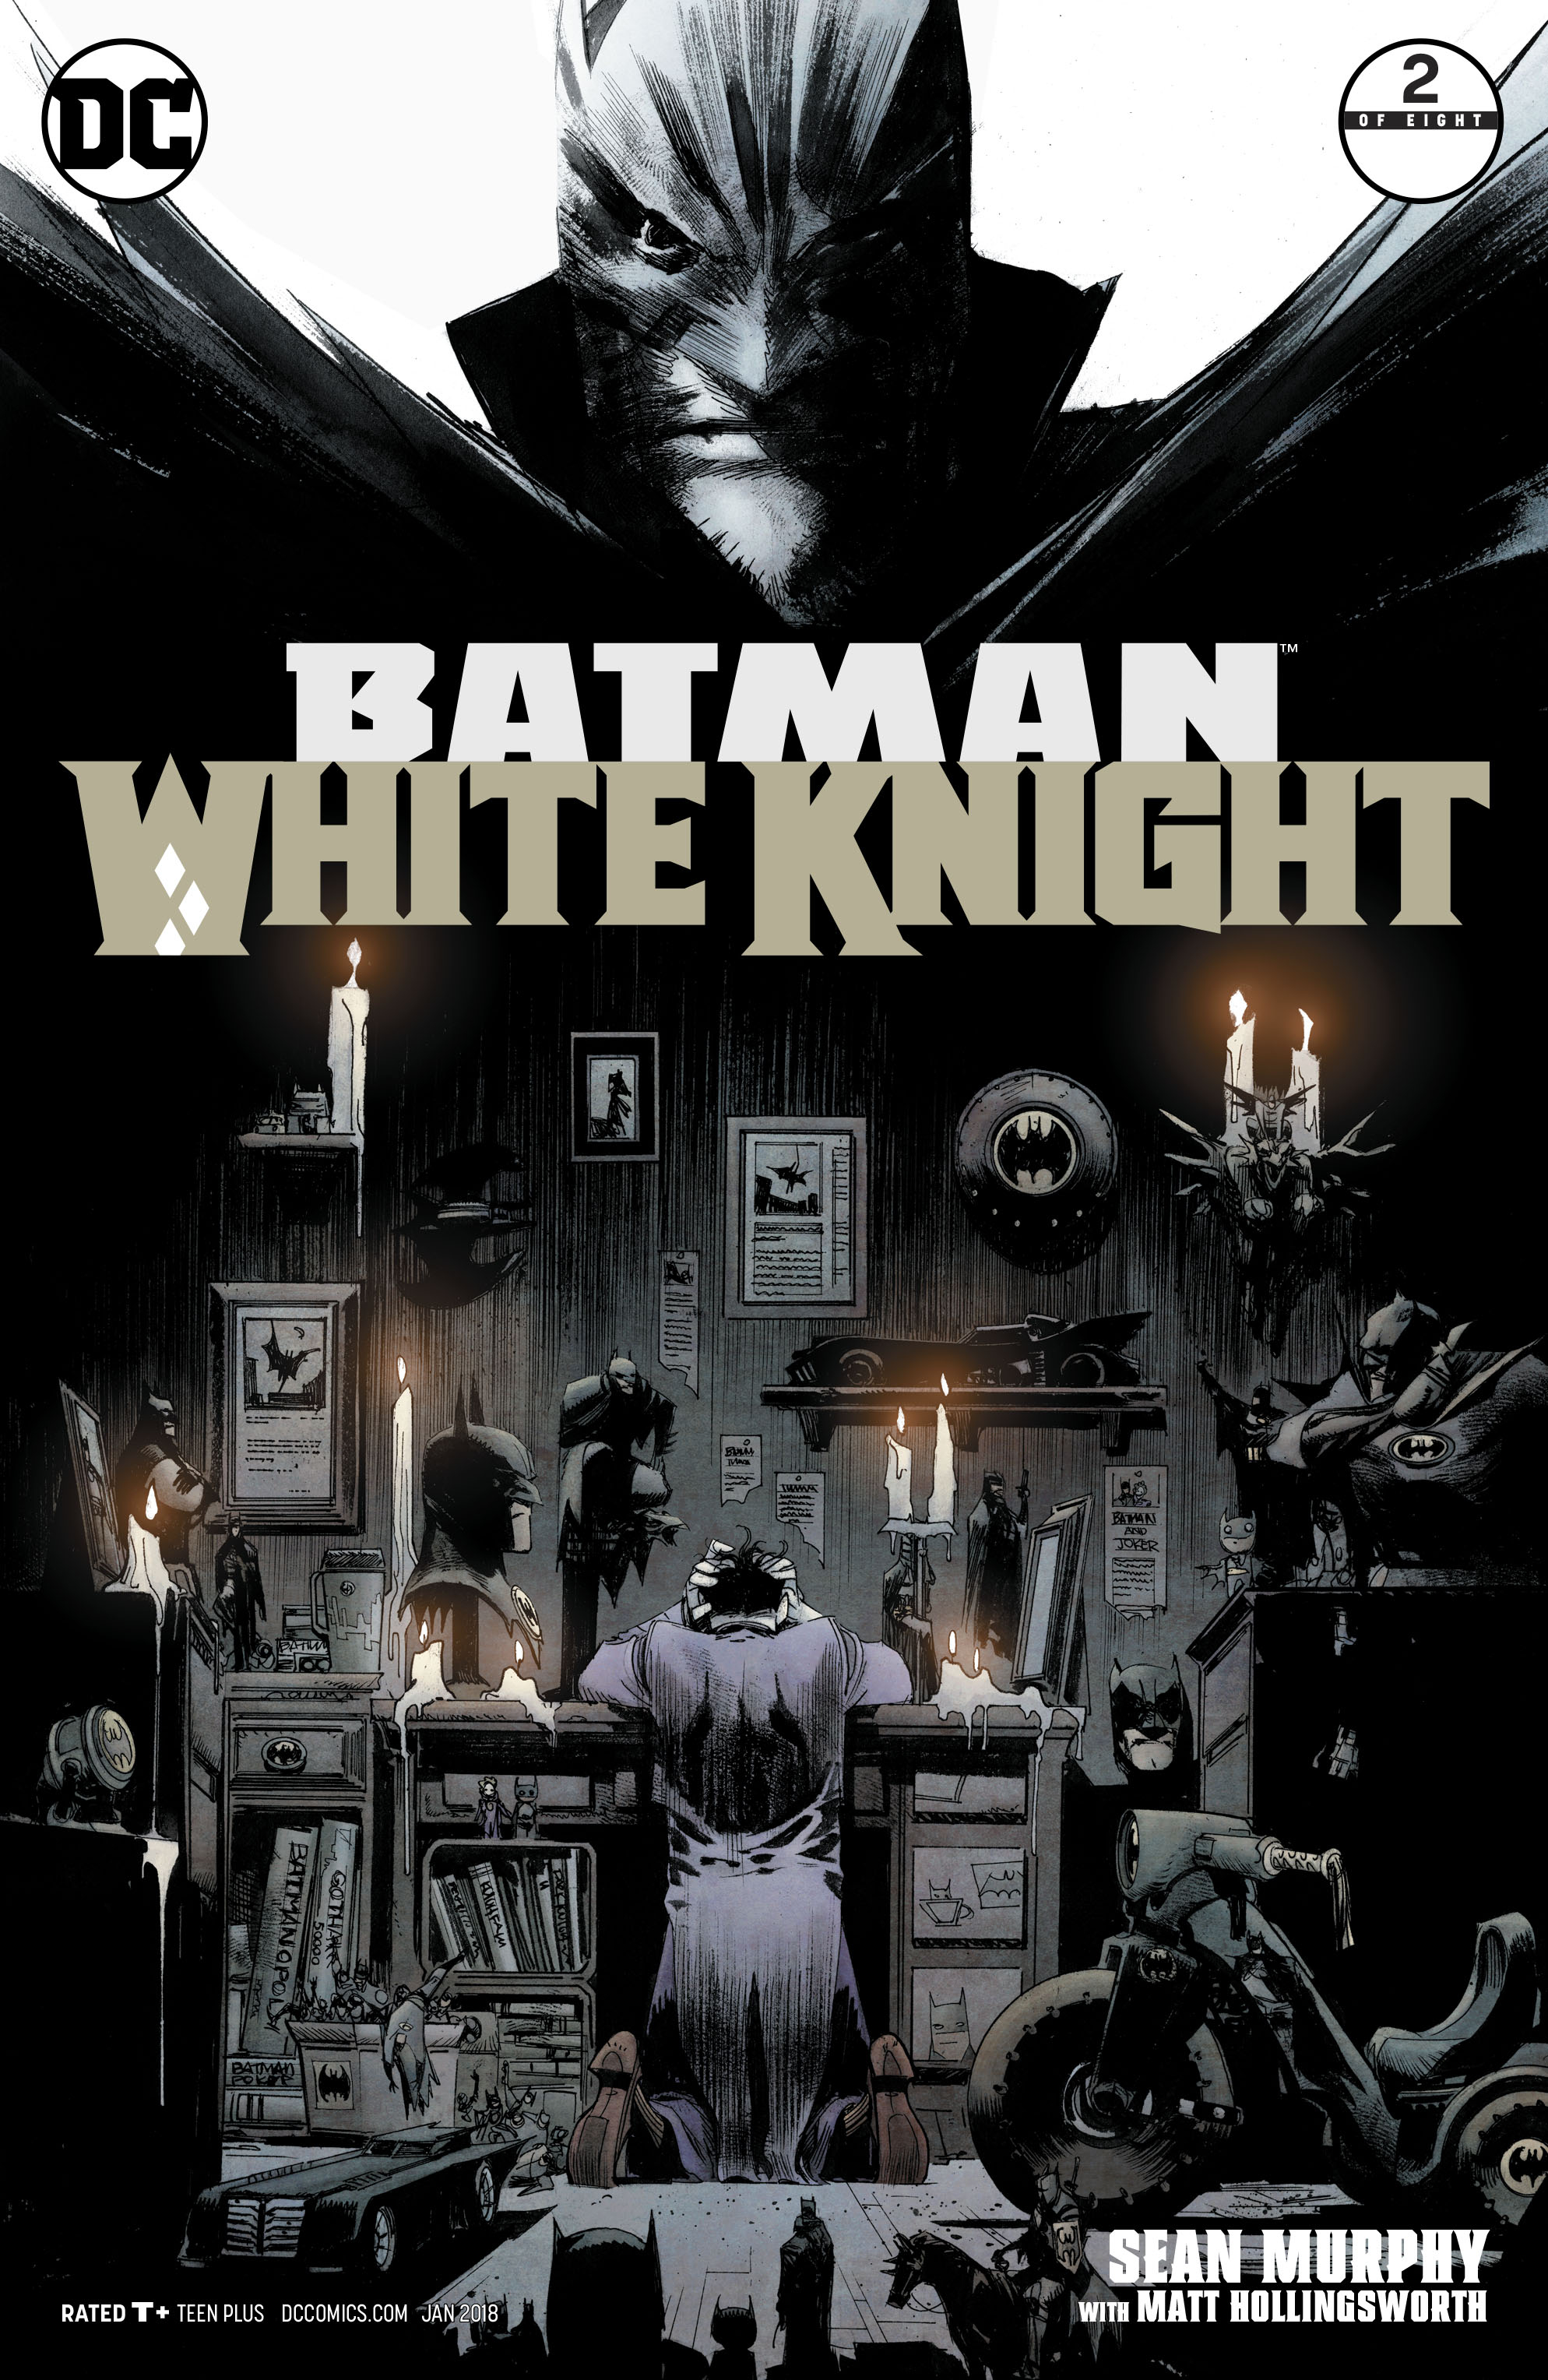 BATMAN WHITE KNIGHT #2 (OF 8)